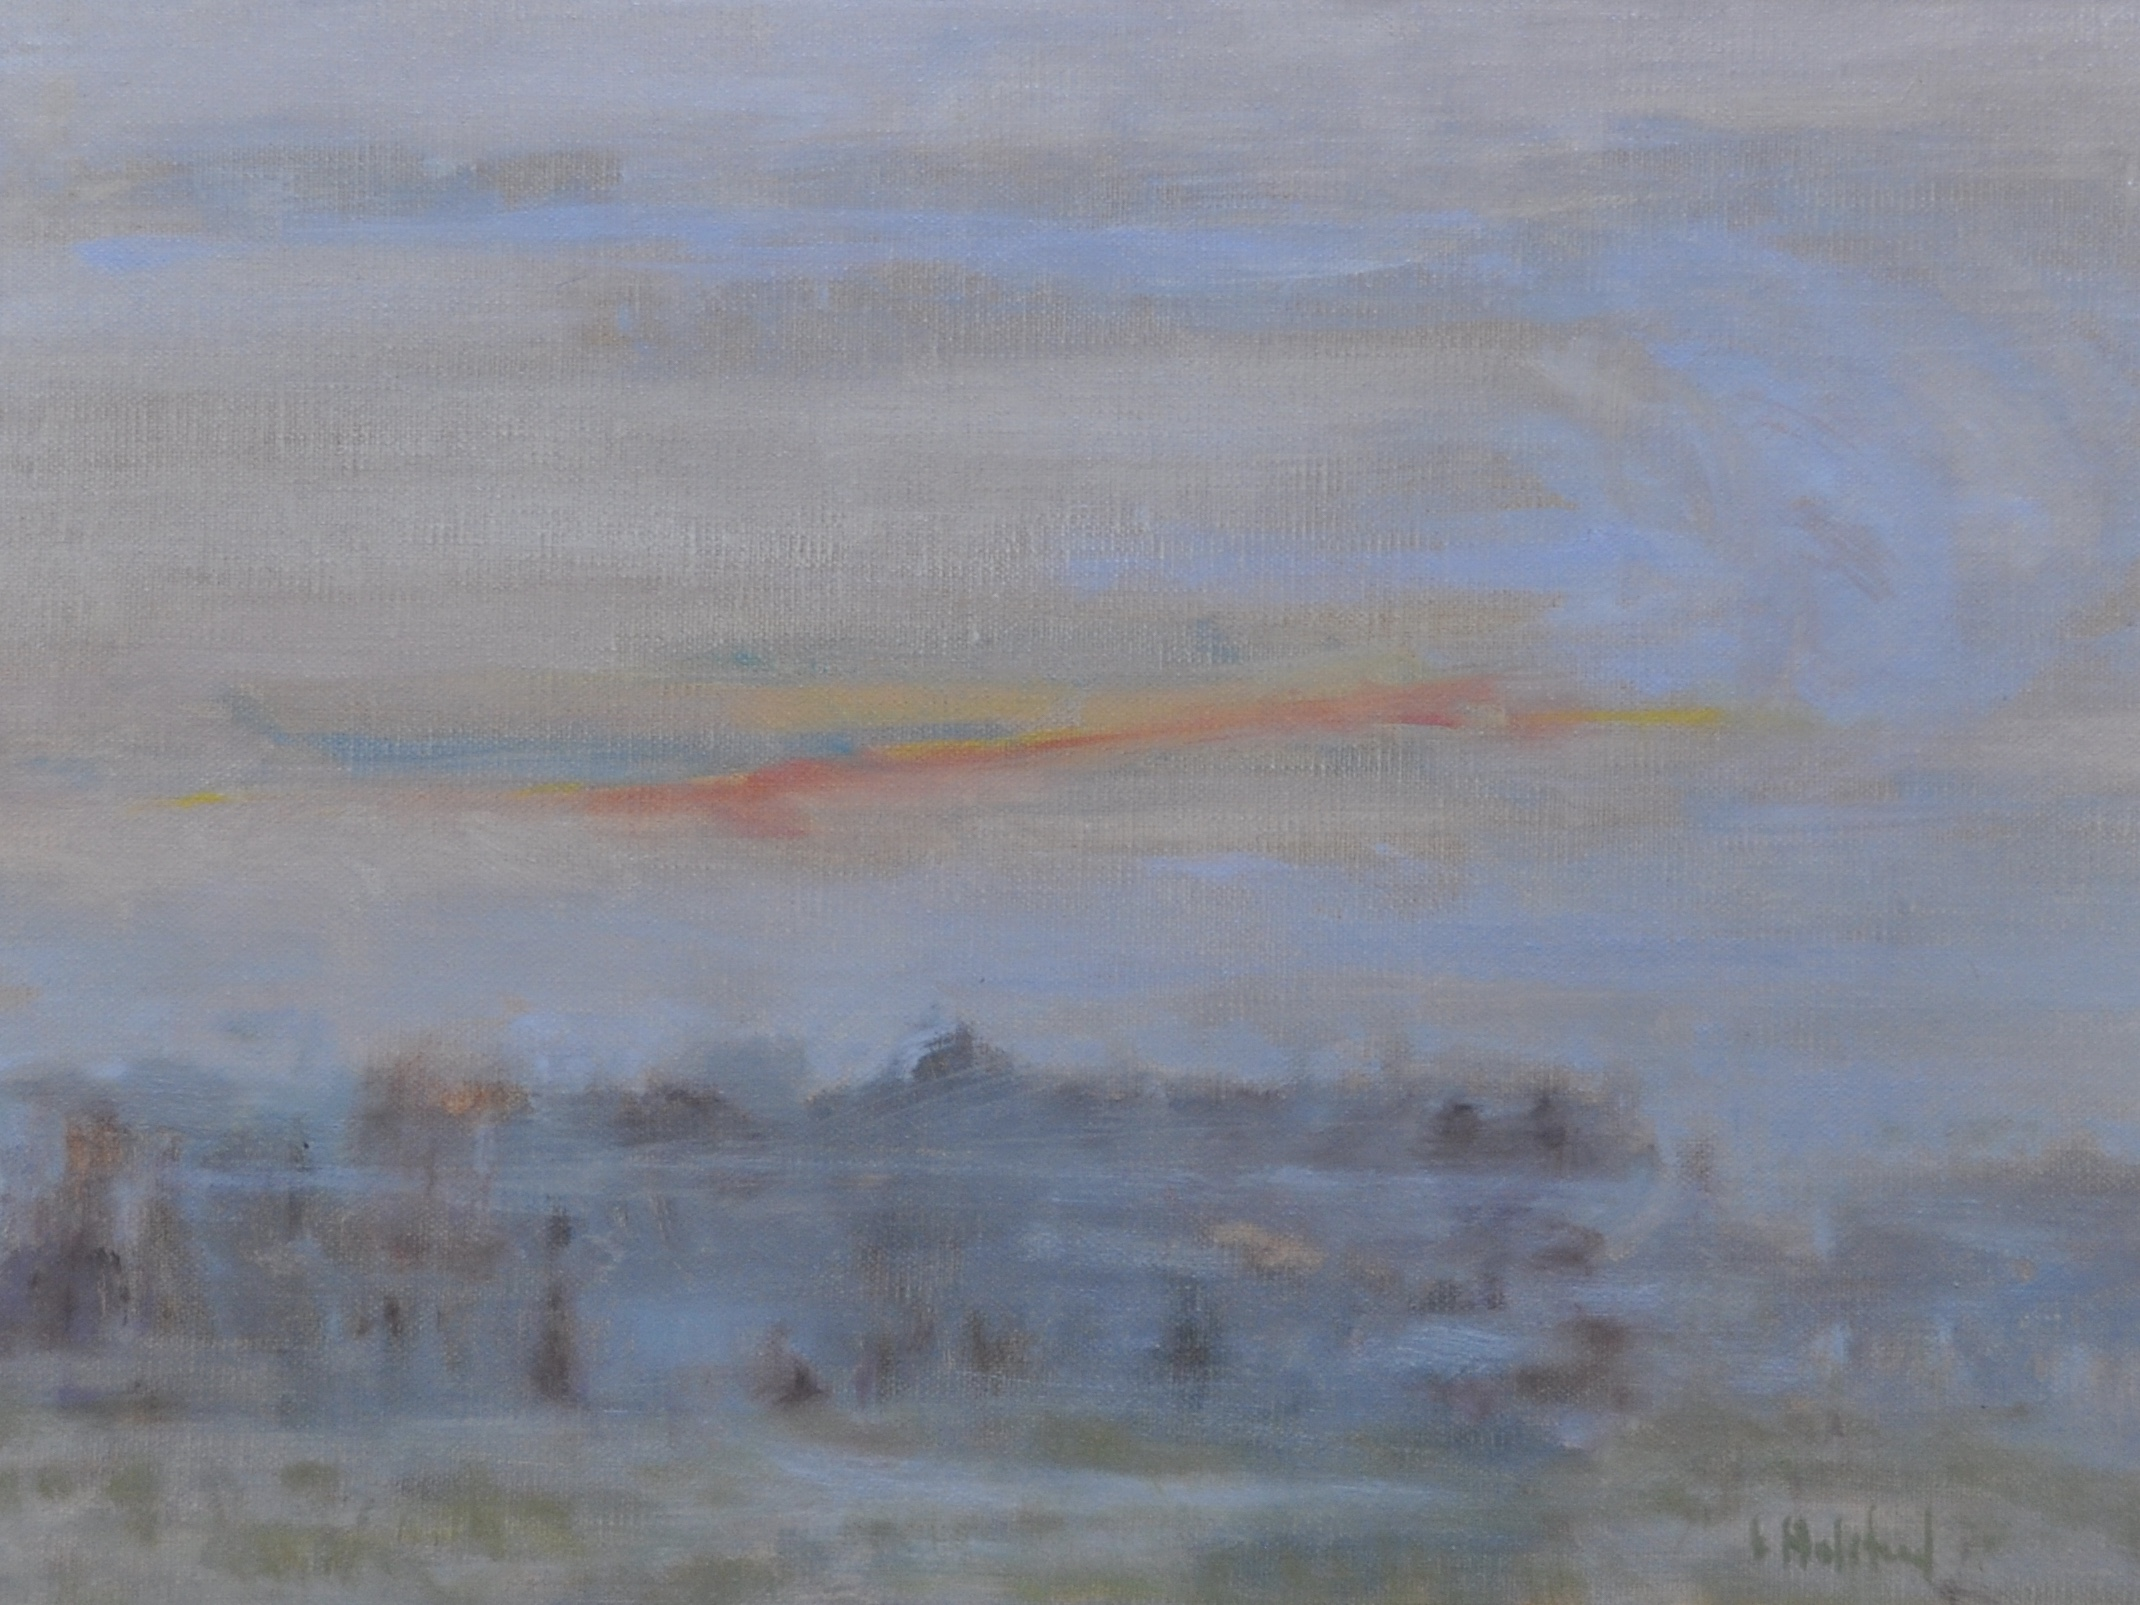 Early Morning Mist, Oil on linen, 9 x 12, available